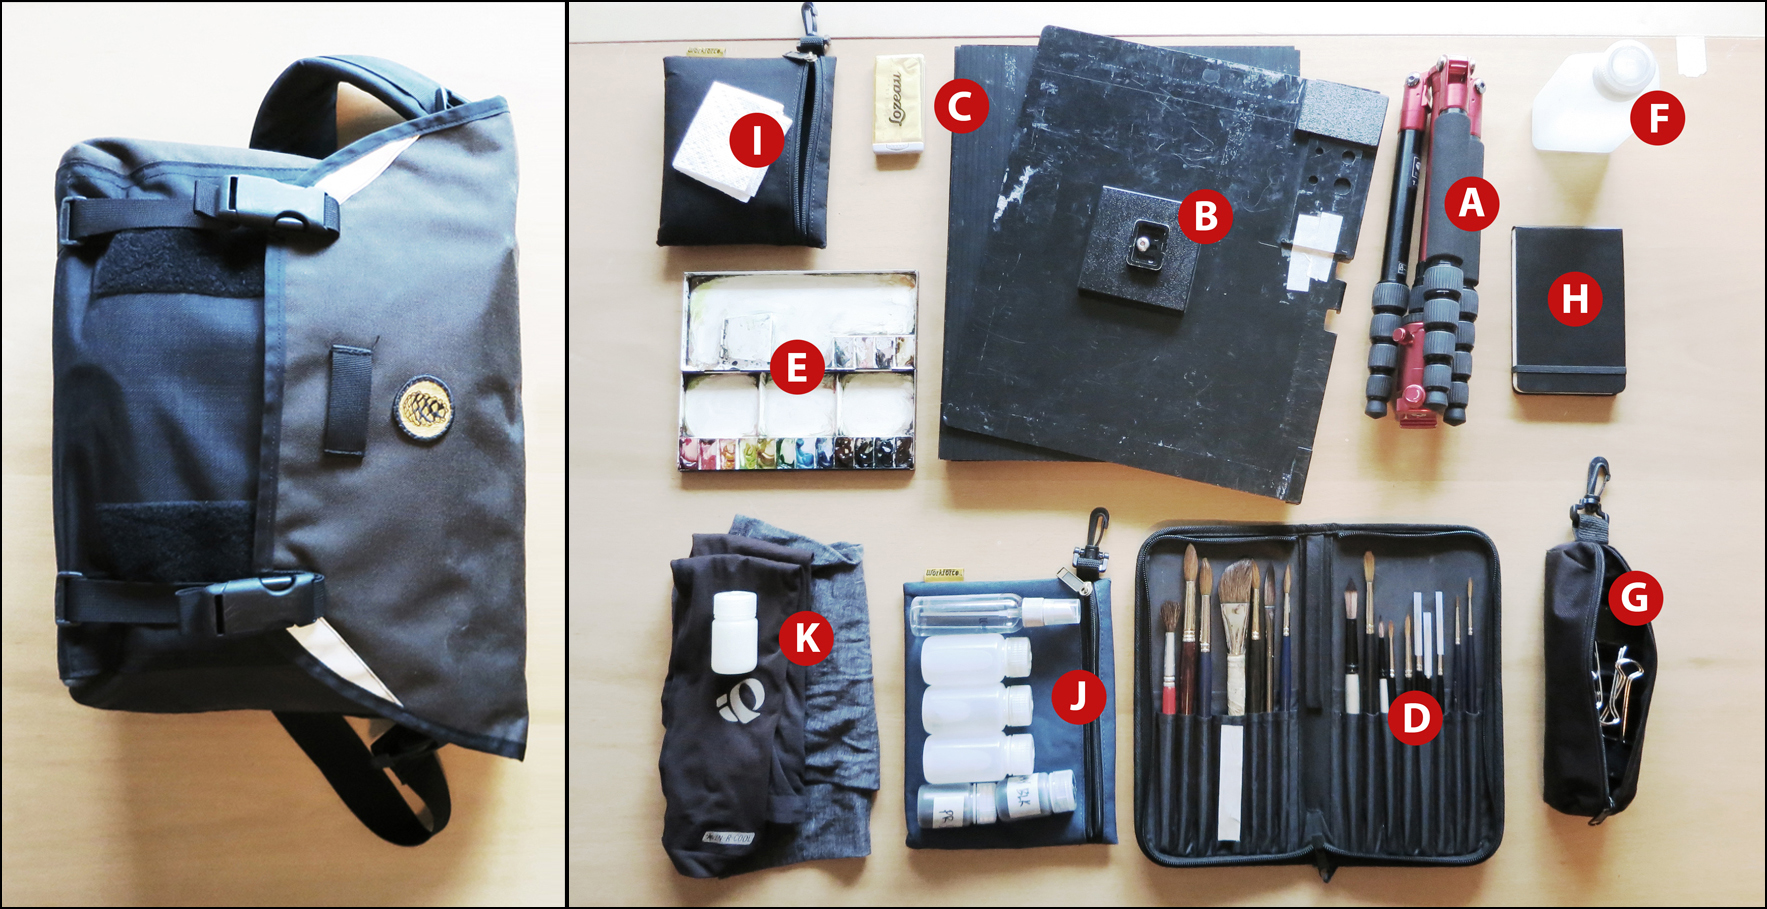 11e3f69a933 Go Bags Go  Field Sketching Kits for the Brazil Symposium   Urban ...